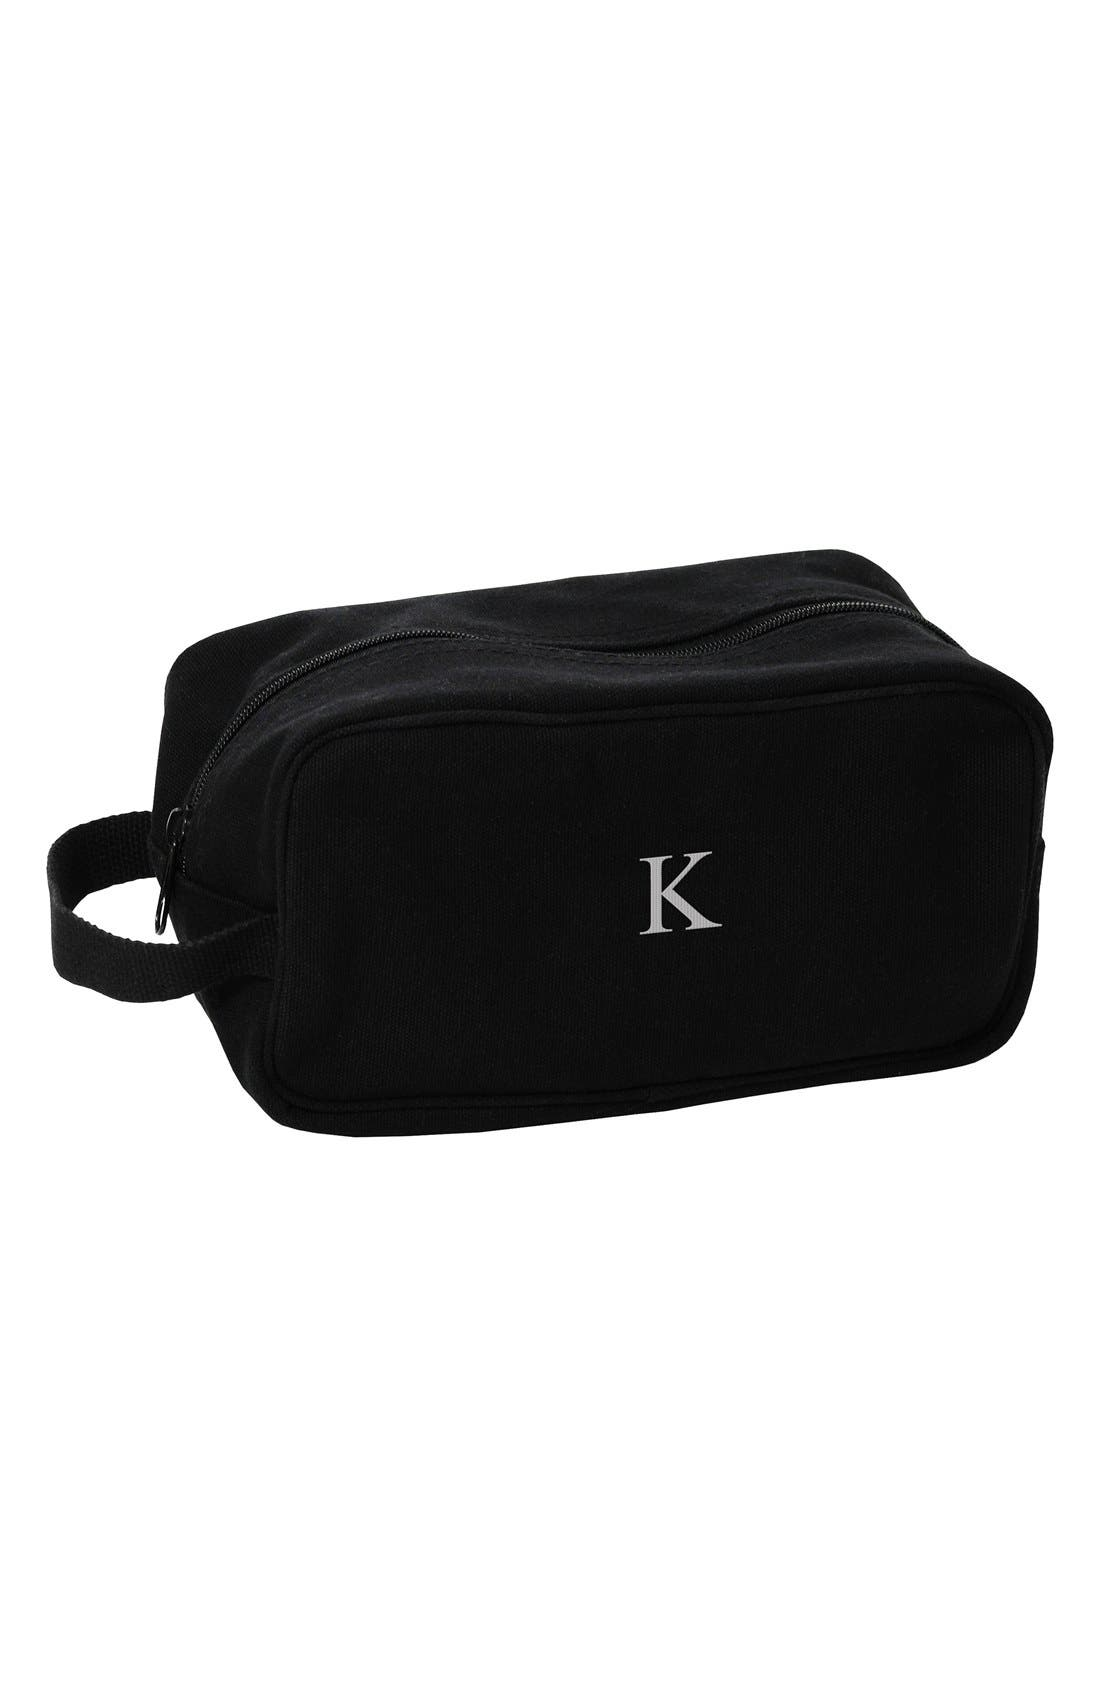 Alternate Image 1 Selected - Cathy's Concepts Monogram Canvas Travel Bag